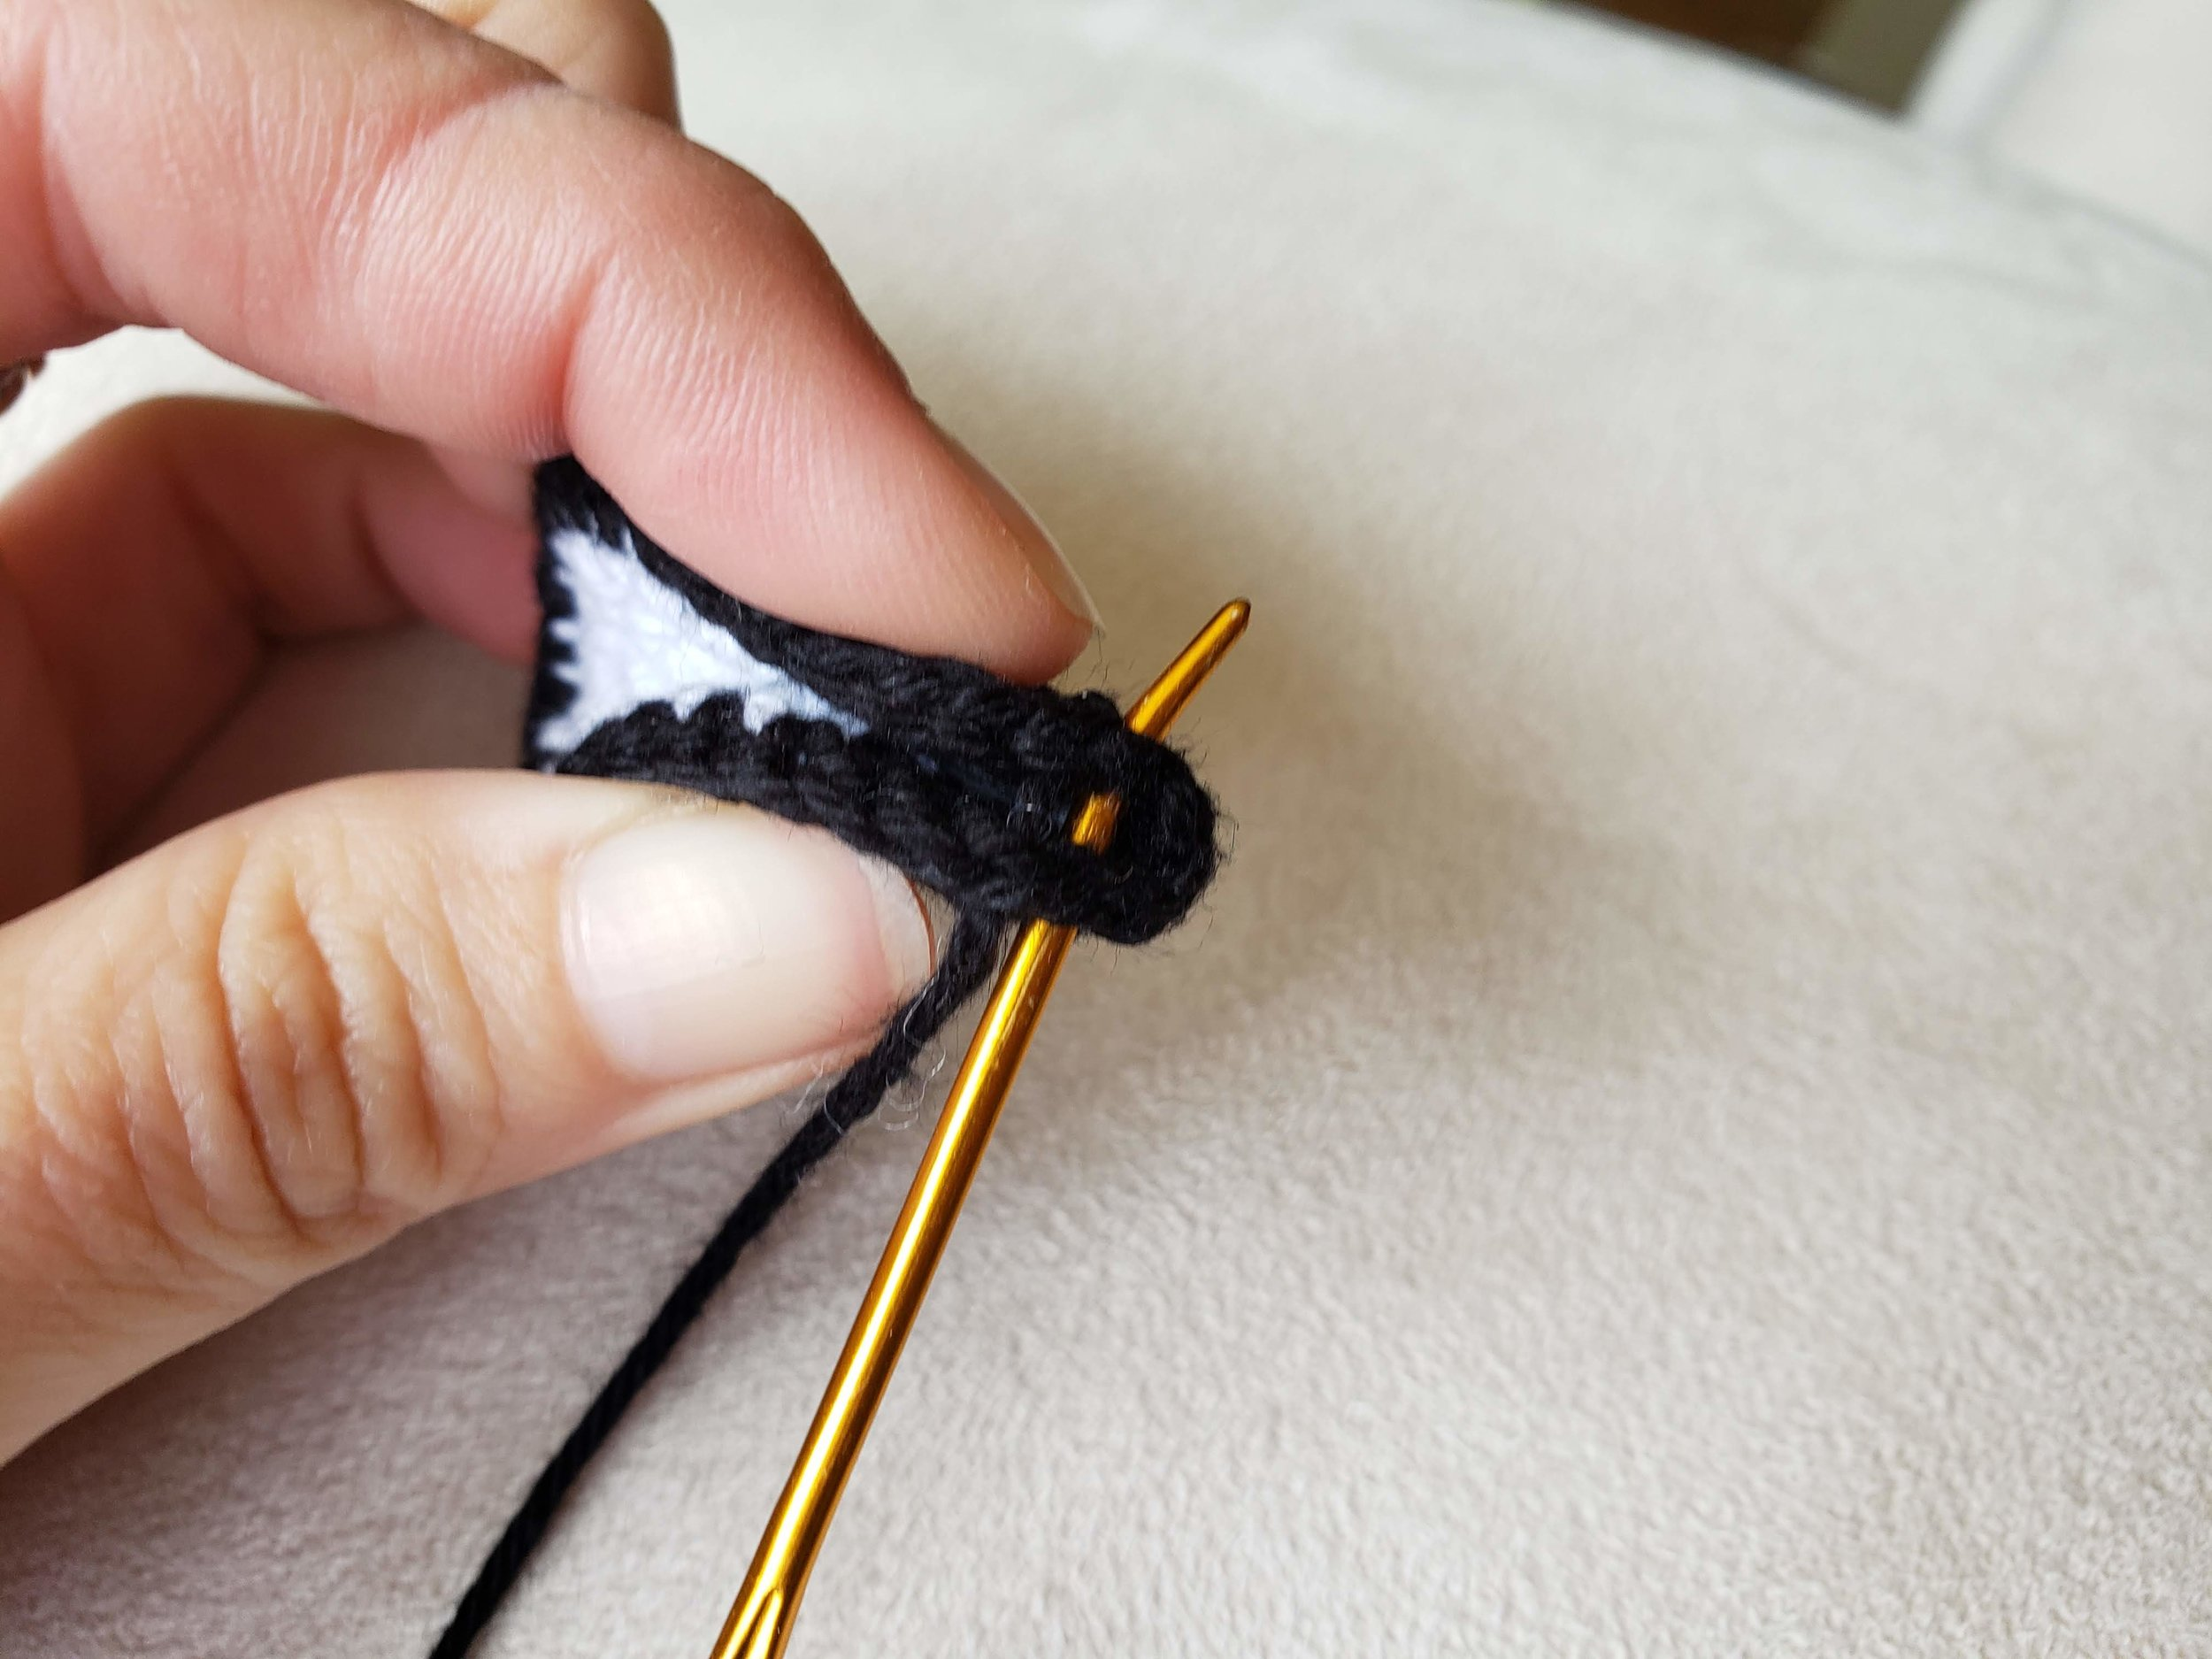 Secure the pinch by sewing the pinched end together